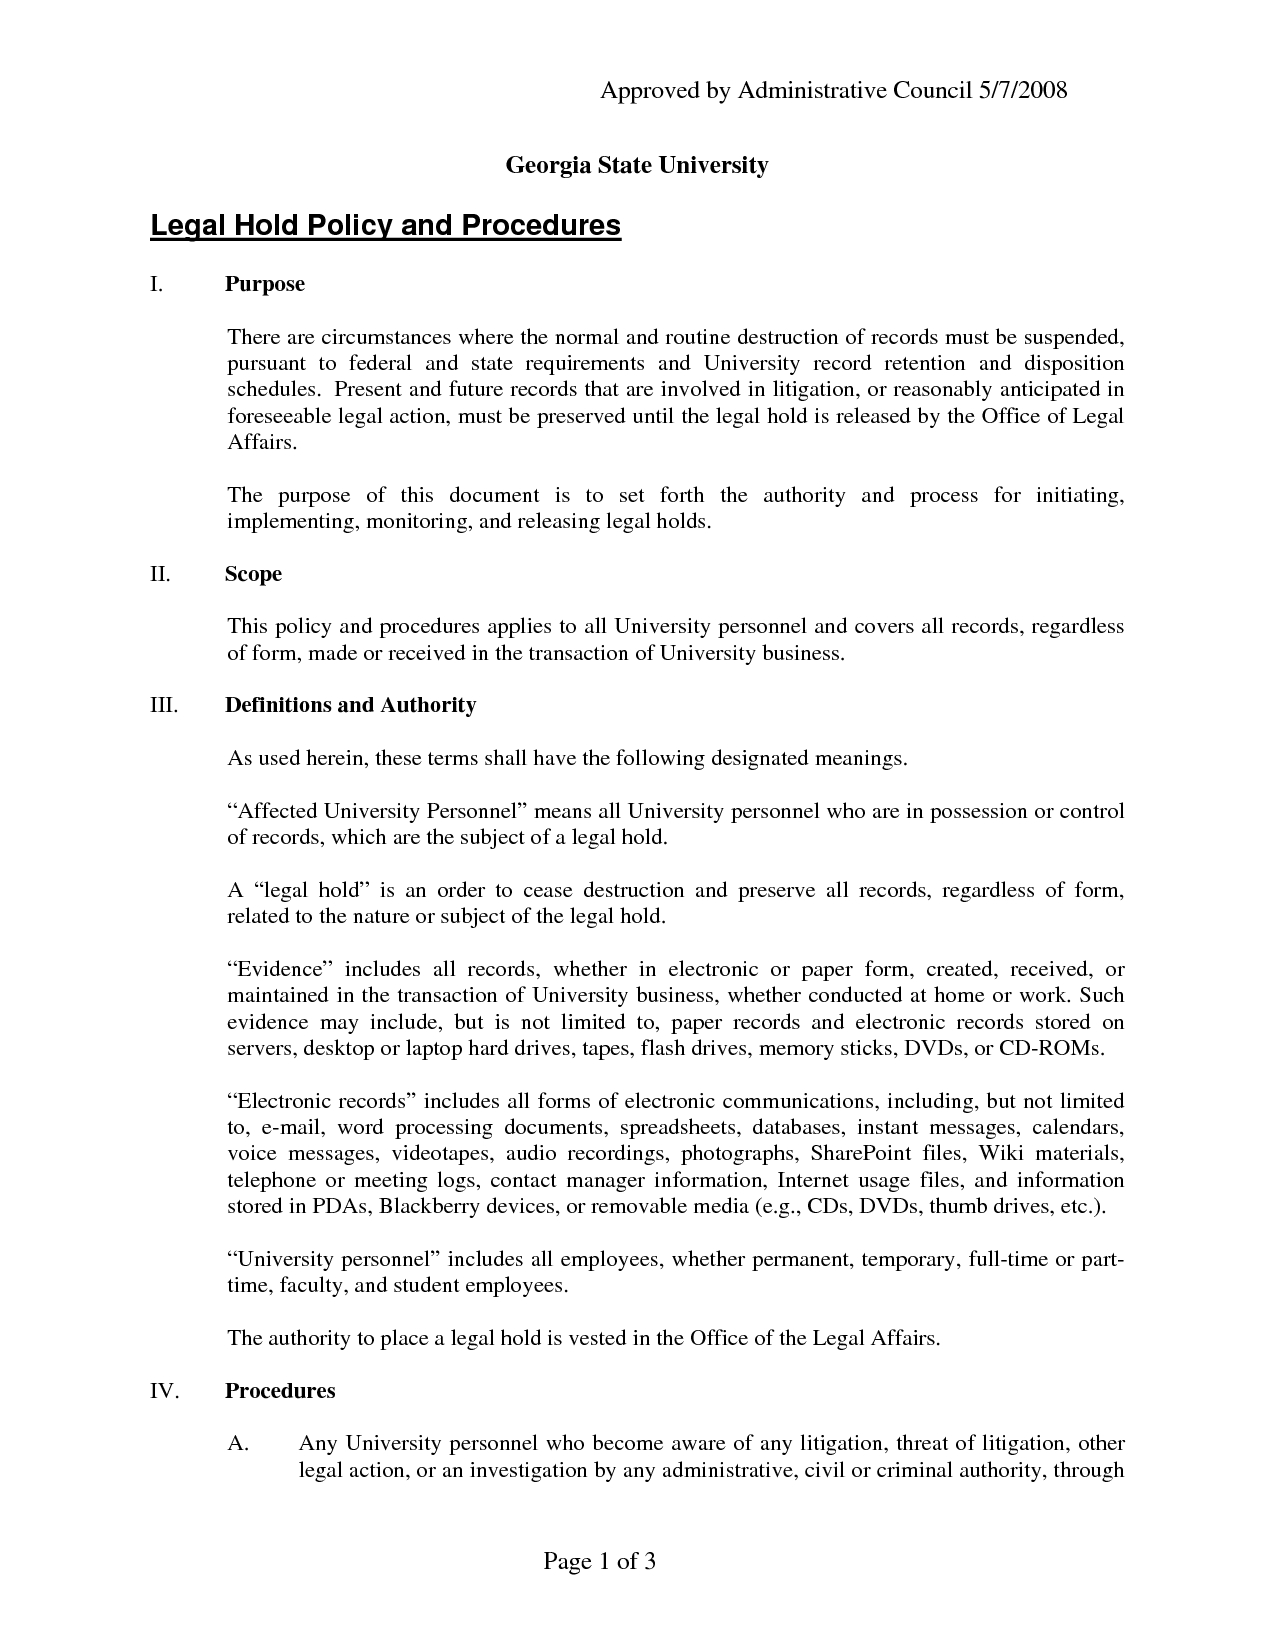 Legal Document Template Approvedadministrativeswo64313 - Free Printable Legal Documents